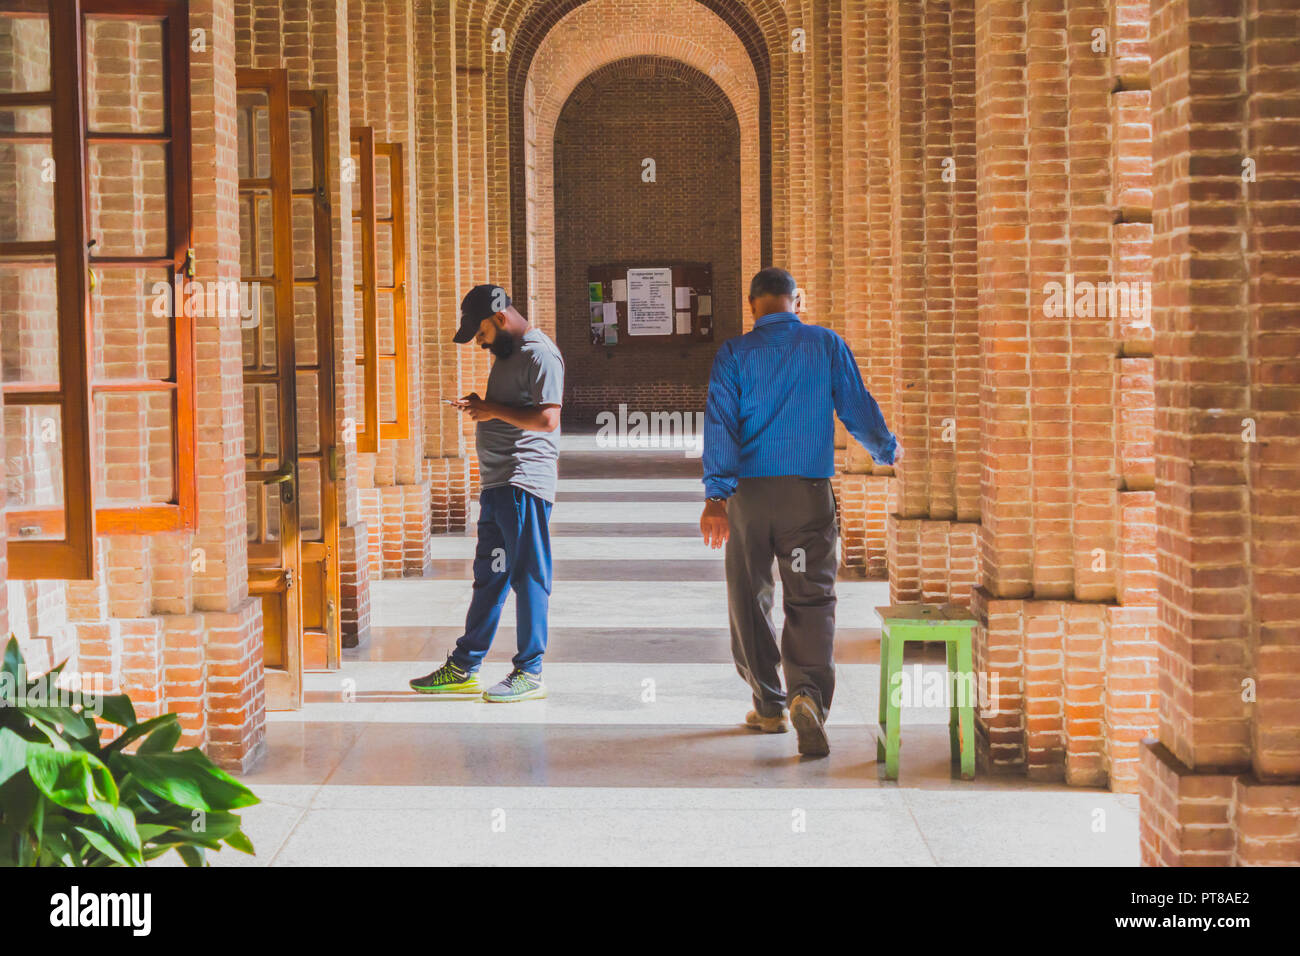 An aisle of a Greco-Roman architecture building with one young bearded man busy with the smartphone and one middle-aged man strolling down the aisle i - Stock Image